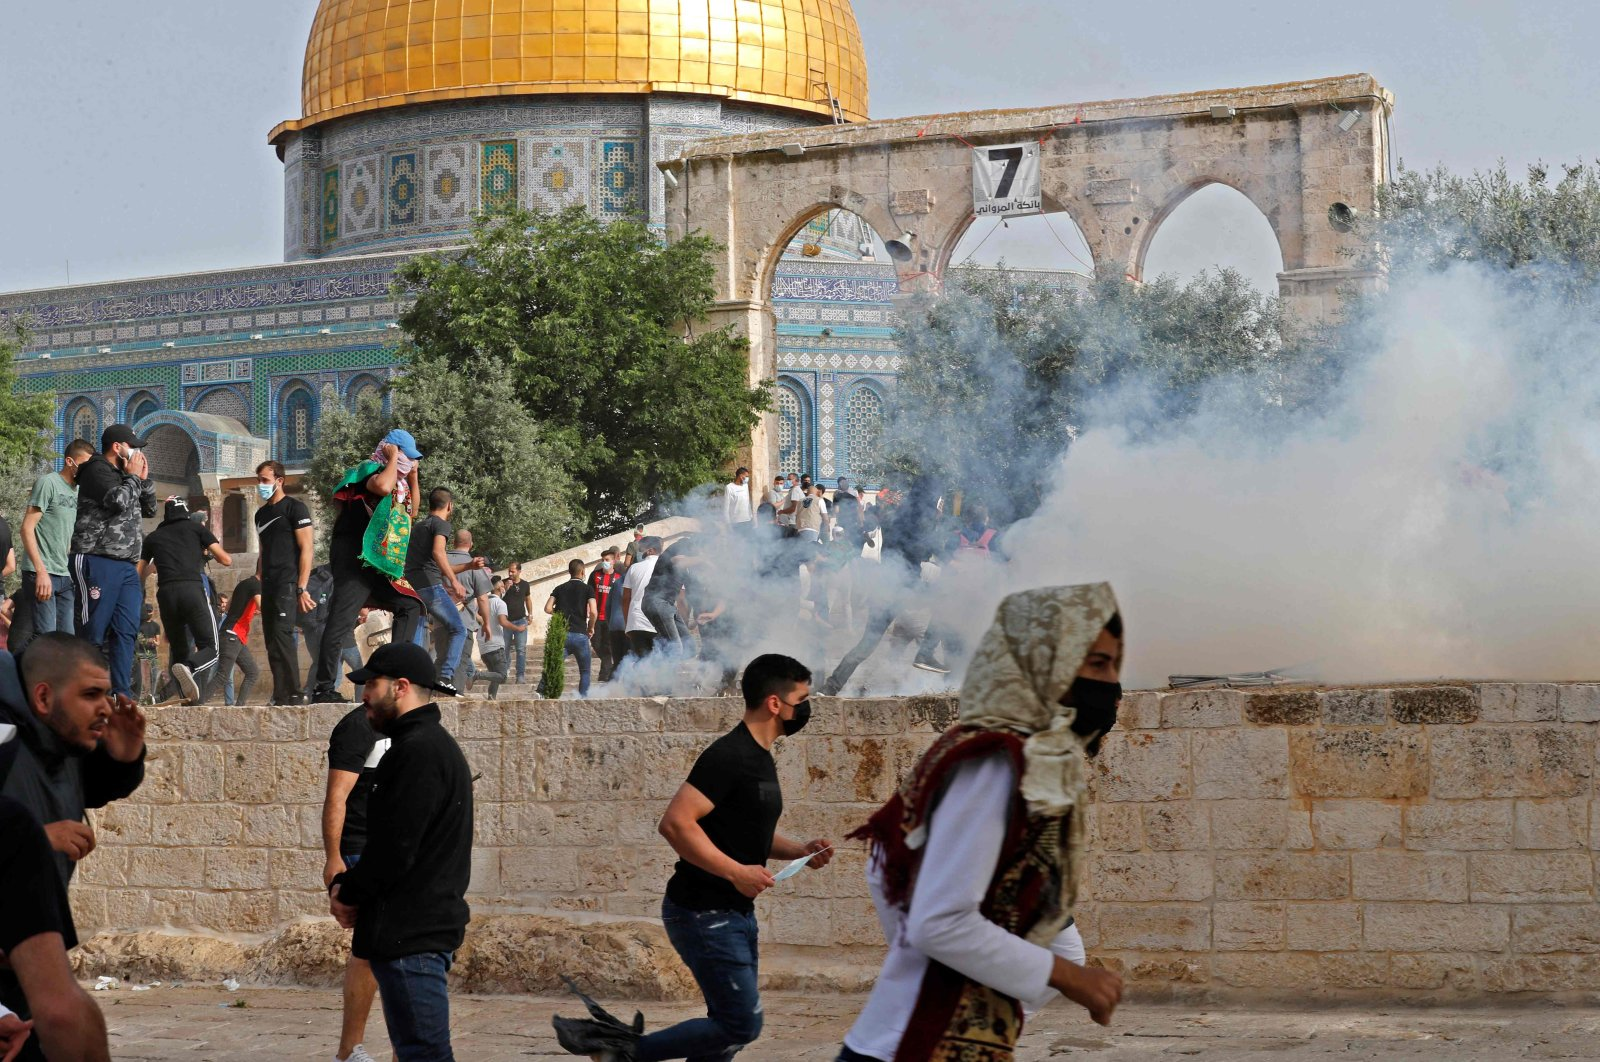 Palestinian protesters run for cover from tear gas fired by Israeli security forces amid clashes at East Jerusalem's Al-Aqsa Mosque complex, occupied Palestine, May 10, 2021. (AFP Photo)